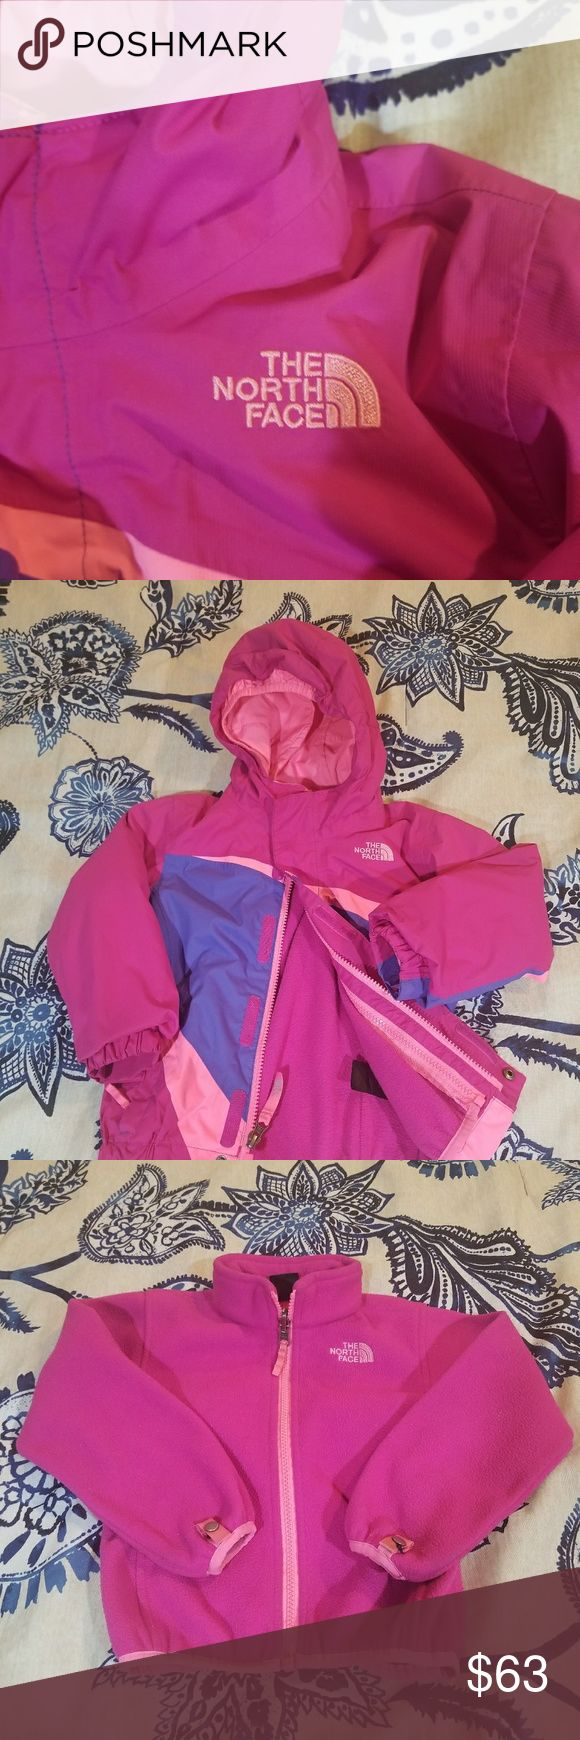 Girls North Face Jacket 3T 3t girls triclimate jacket.  Great jacket for winter. Was only used one winter. Very minimal signs of wear. The fleece lining/sweater is removable so its like getting 2 in 1. The North Face Jackets & Coats